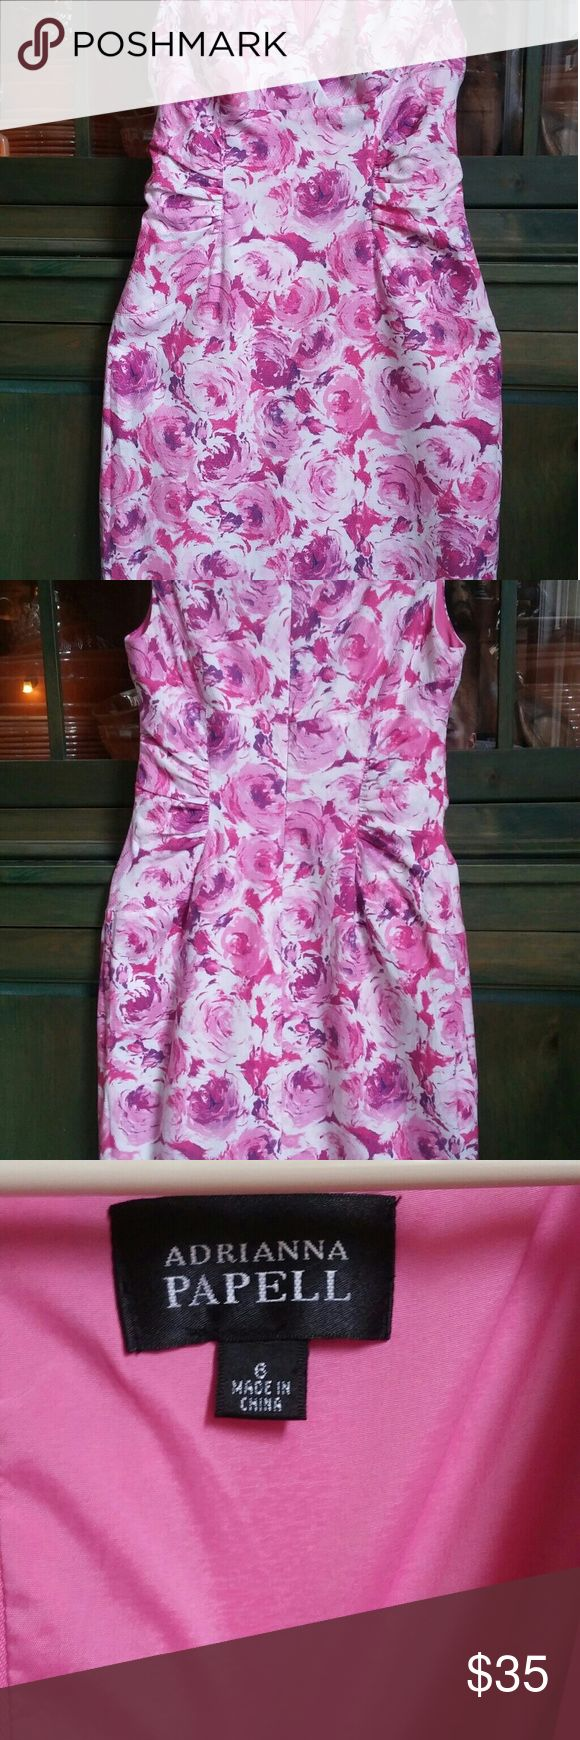 "Adrianna Papell Spring Summer Dress Adrianna Pappell spring or summer wedding guest dress. Figure flattering. Slim fit. I am 5' 6"", 134 lbs and it fit perfect with no room left. Colors are pinks with some slashes of purple. Falls below the knee. Dress is in good condition. I bought it used, wore once. It is clean with no rips or worn areas. Size 6. Adrianna Papell Dresses Wedding"